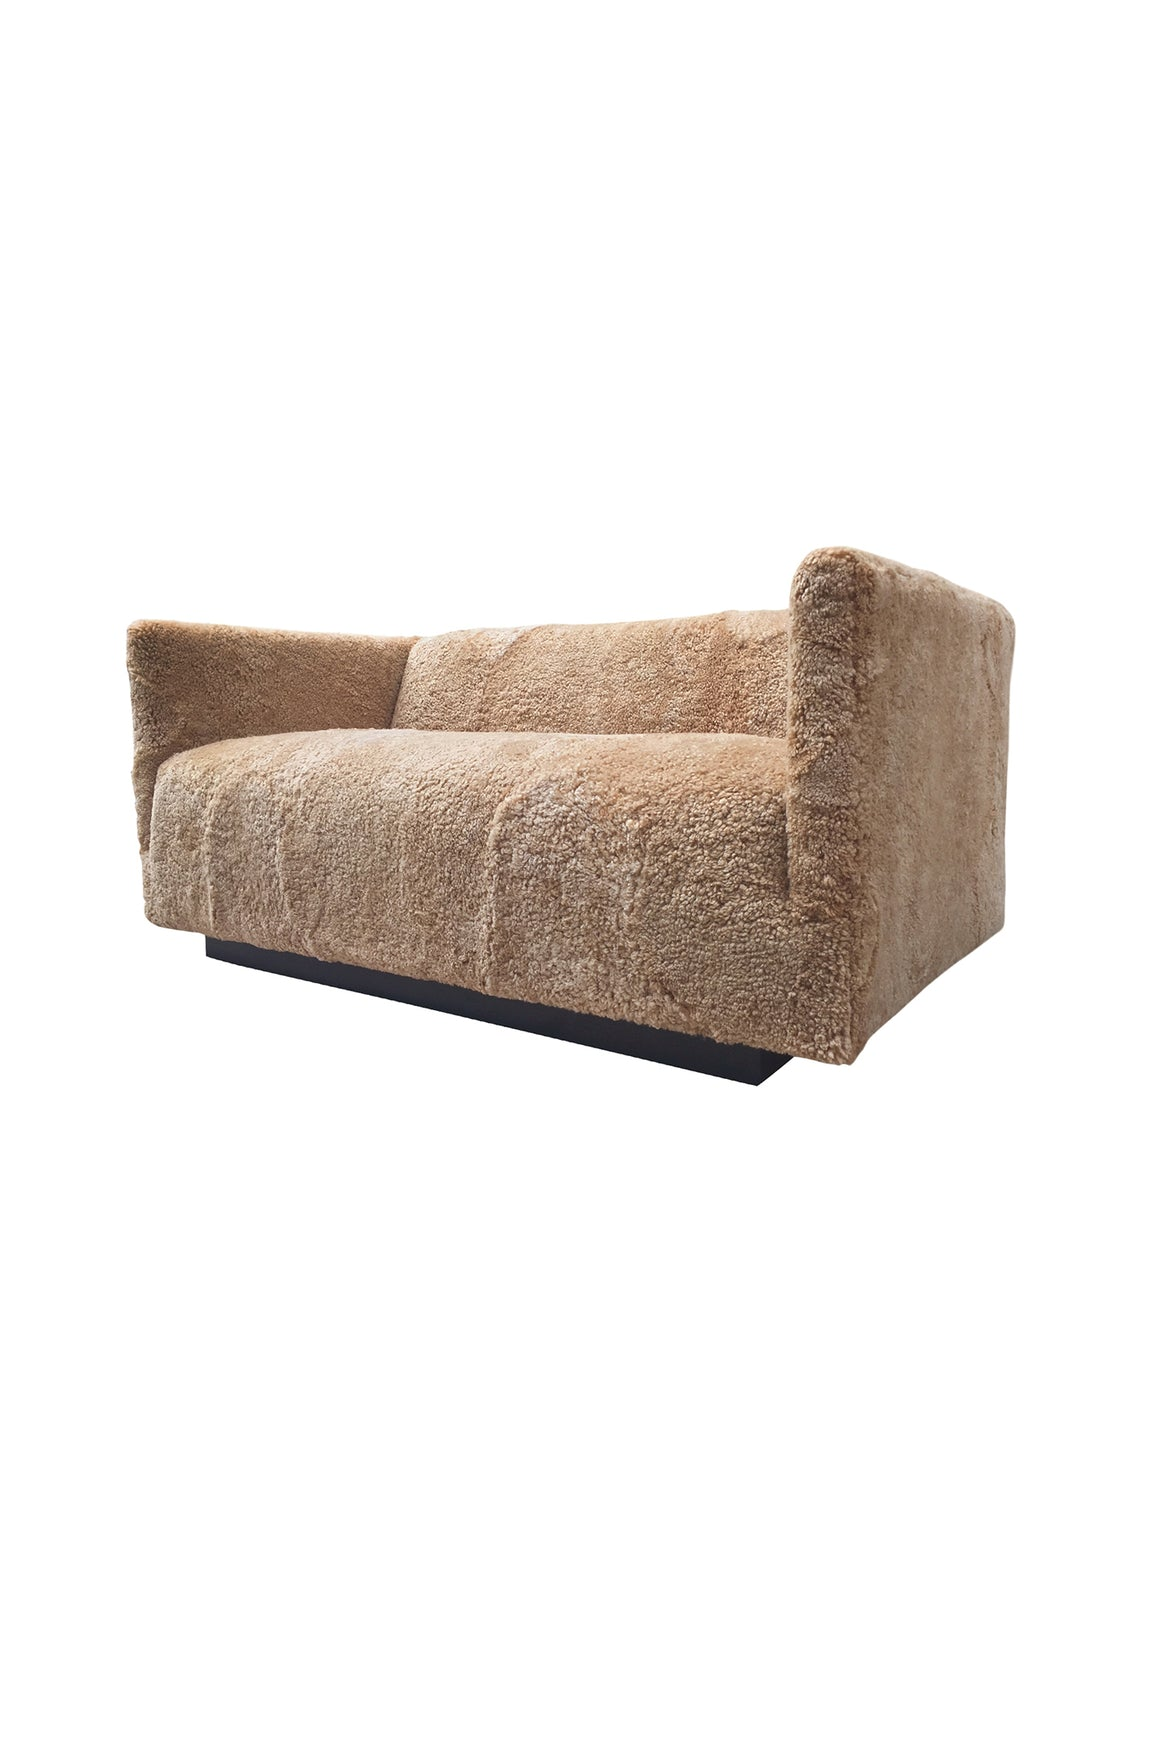 1960s Milo Baughman Settee in New Skandilock Shearling